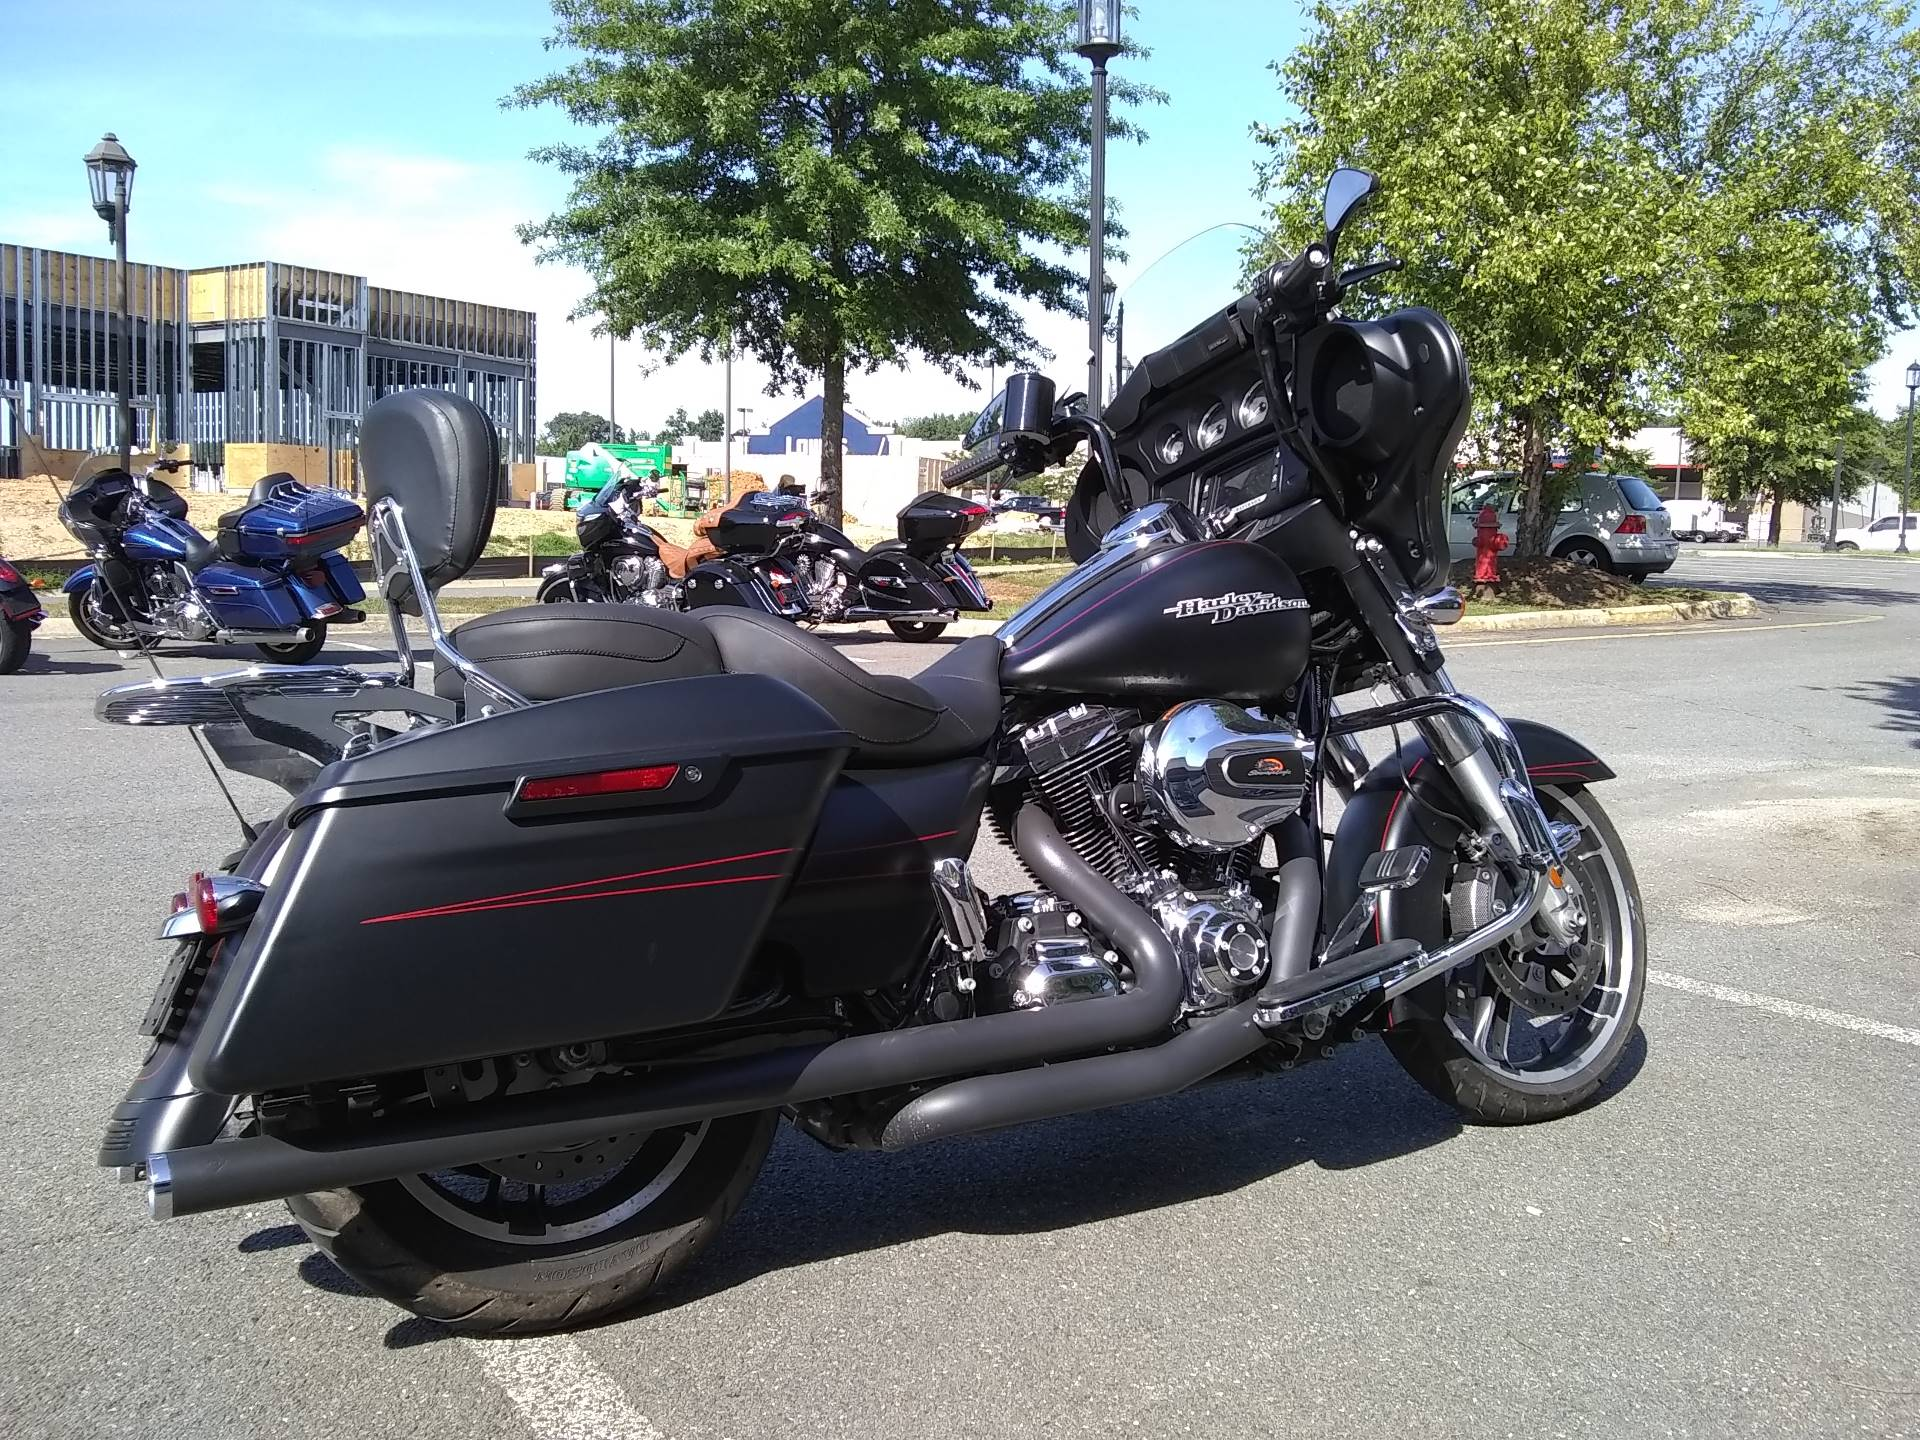 2016 HARLEY DAVIDSON Street Glide Special in Fredericksburg, Virginia - Photo 7